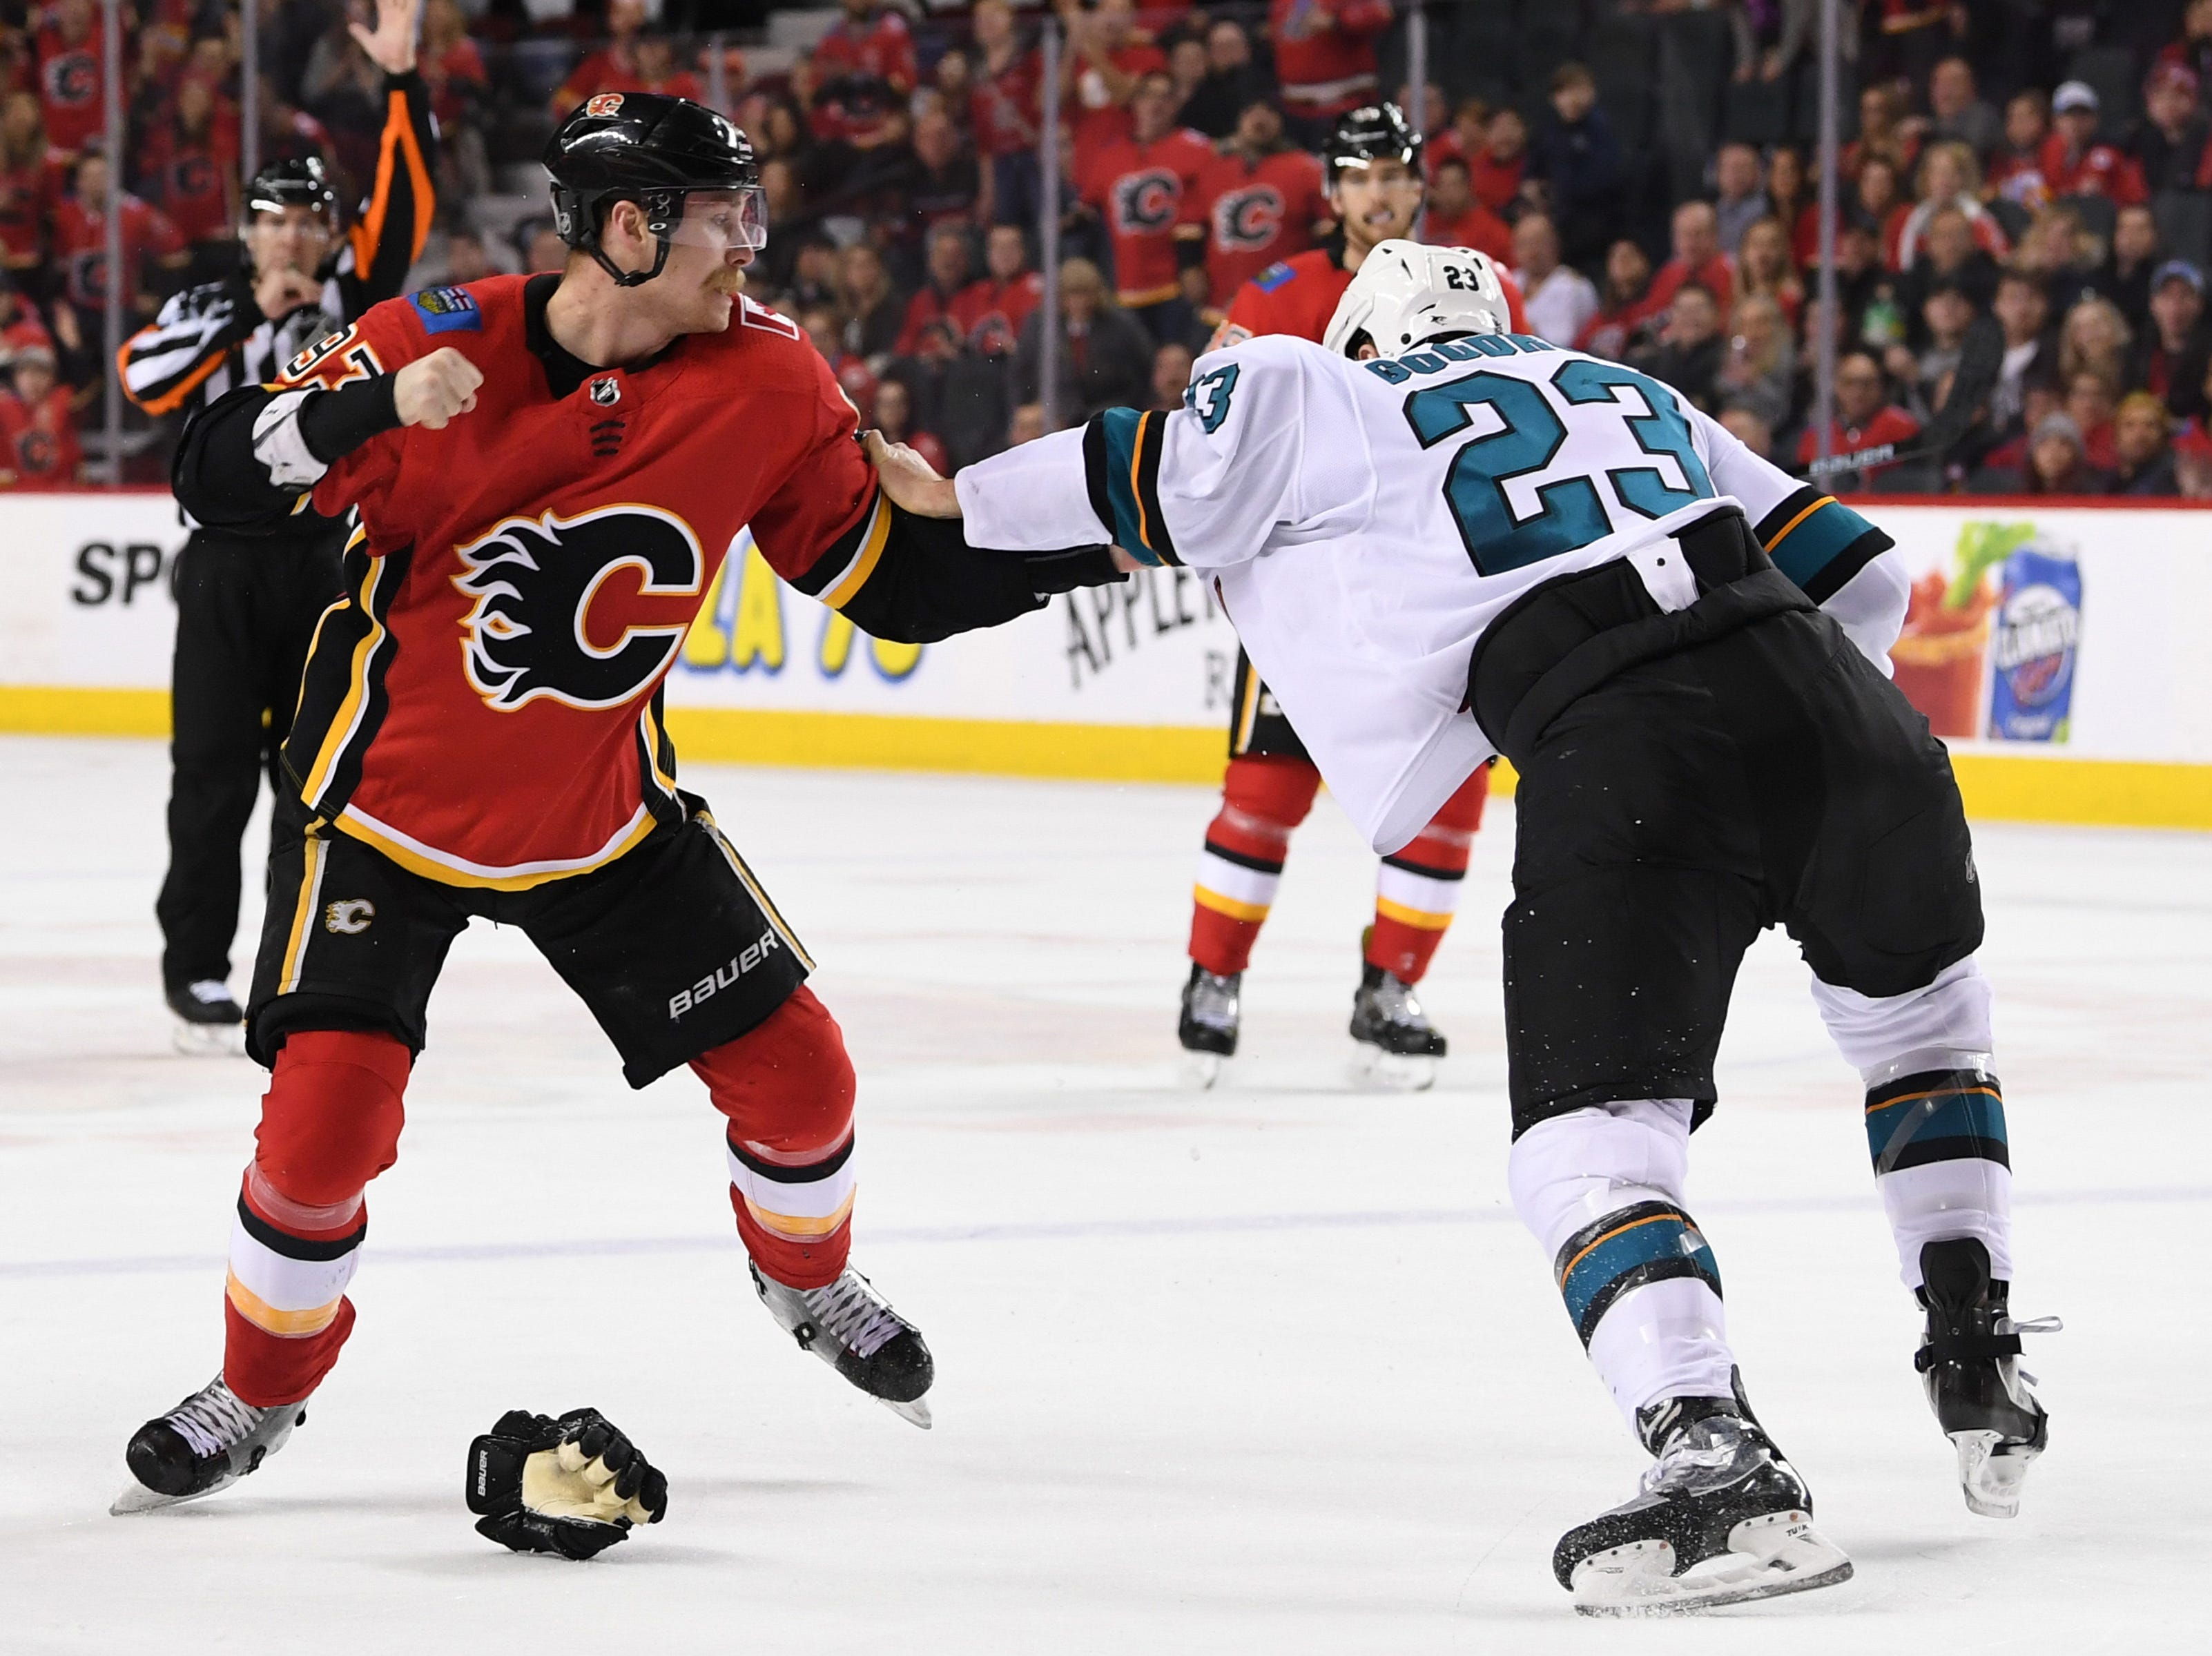 Dec. 31: Calgary Flames' Sam Bennett vs. San Jose Sharks' Barclay Goodrow.